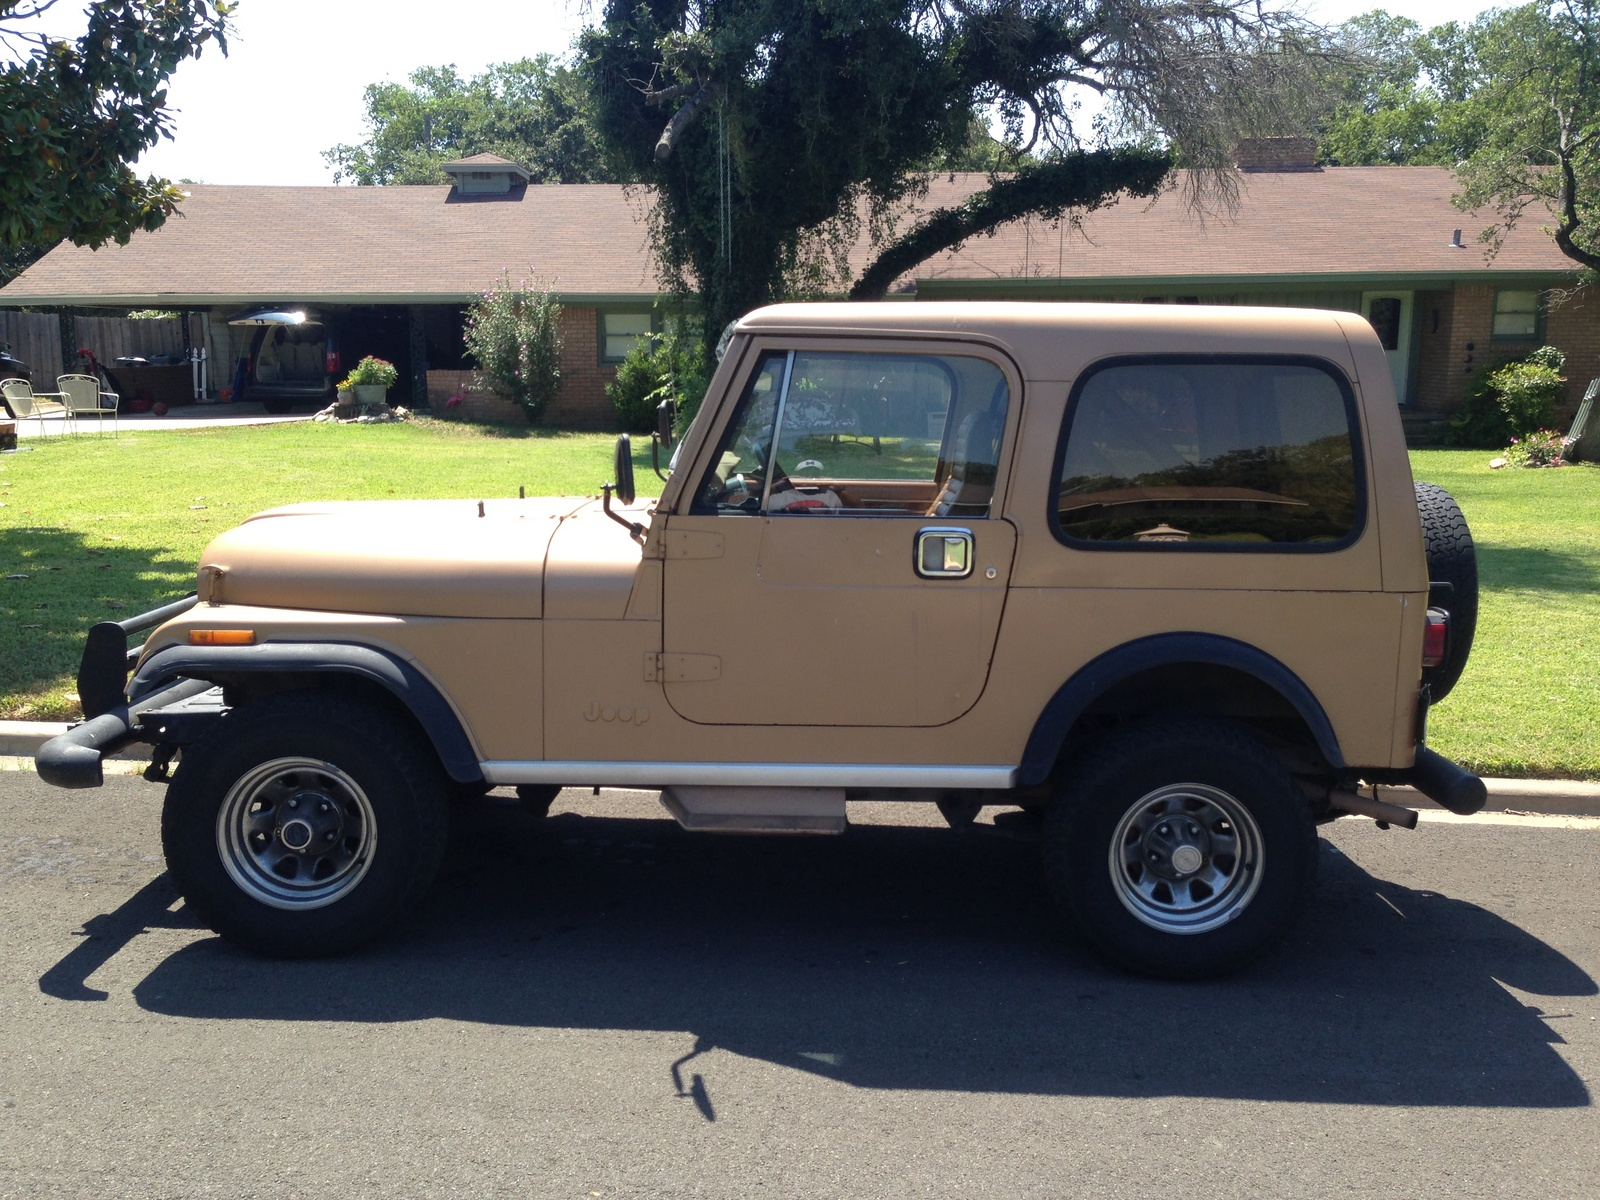 1981 jeep wagoneer pictures cargurus - 1985 Jeep Cj7 Pictures Cargurus